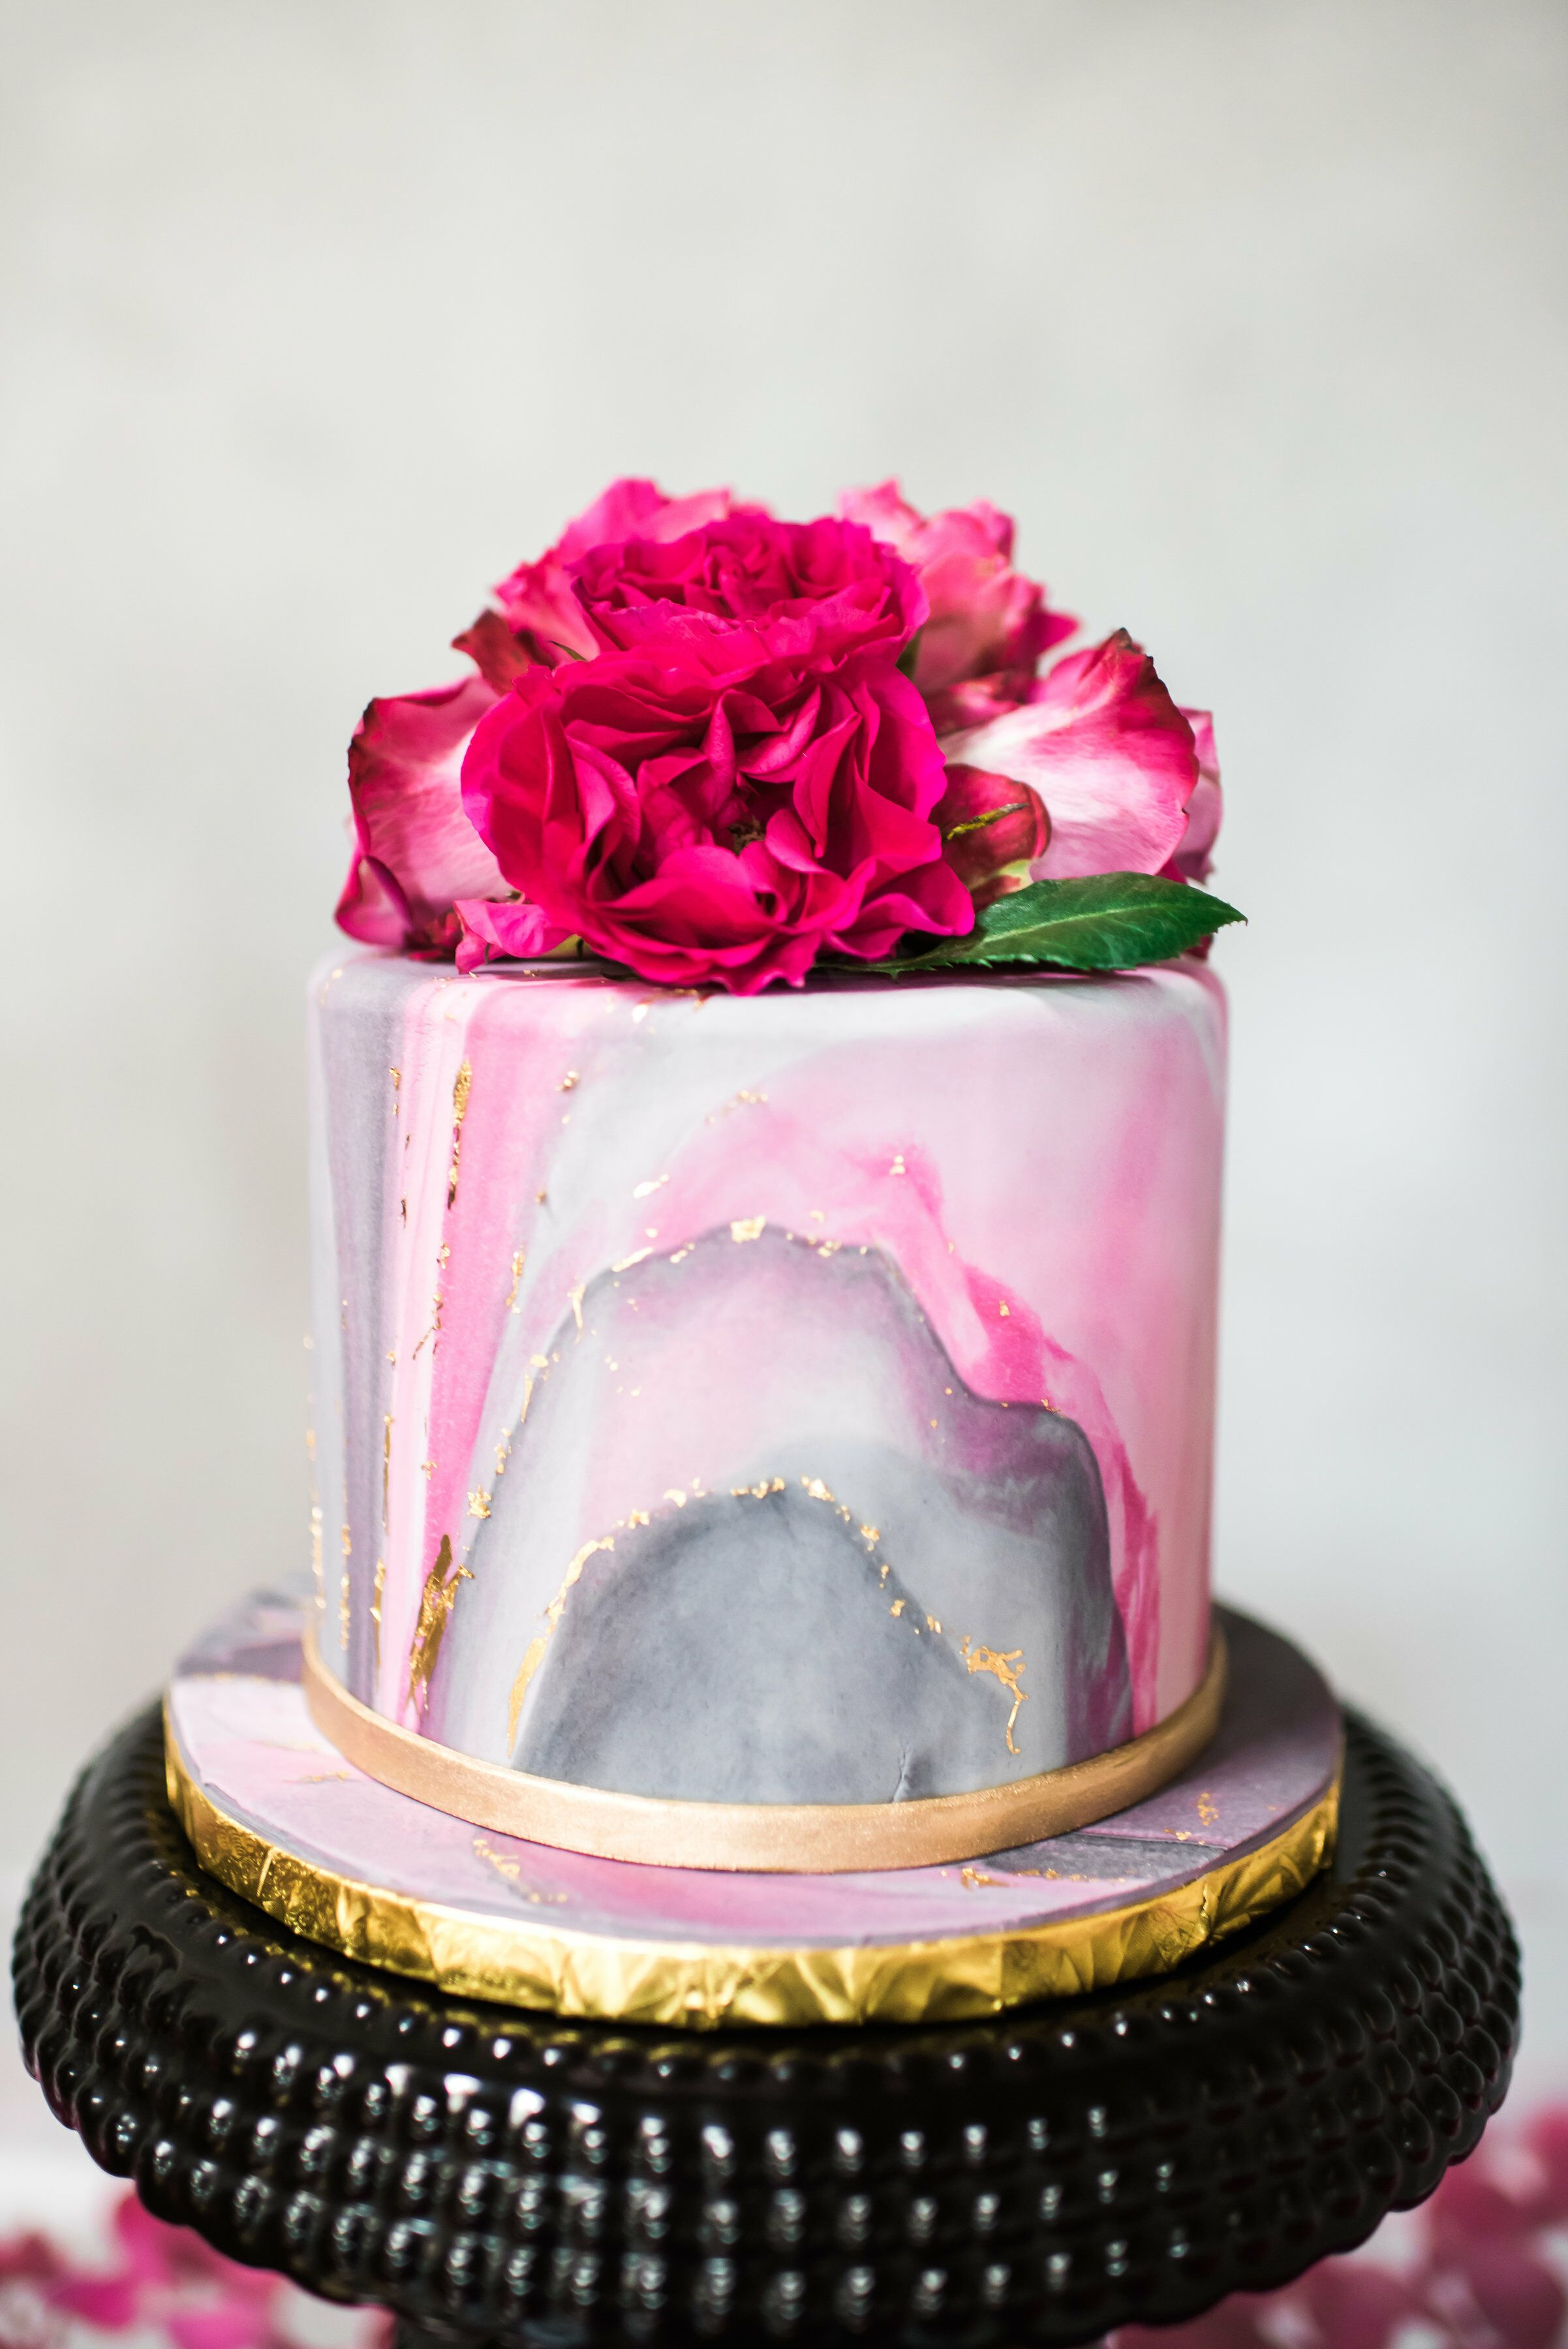 Wedding Cake Bakeries in Dallas, TX - The Knot